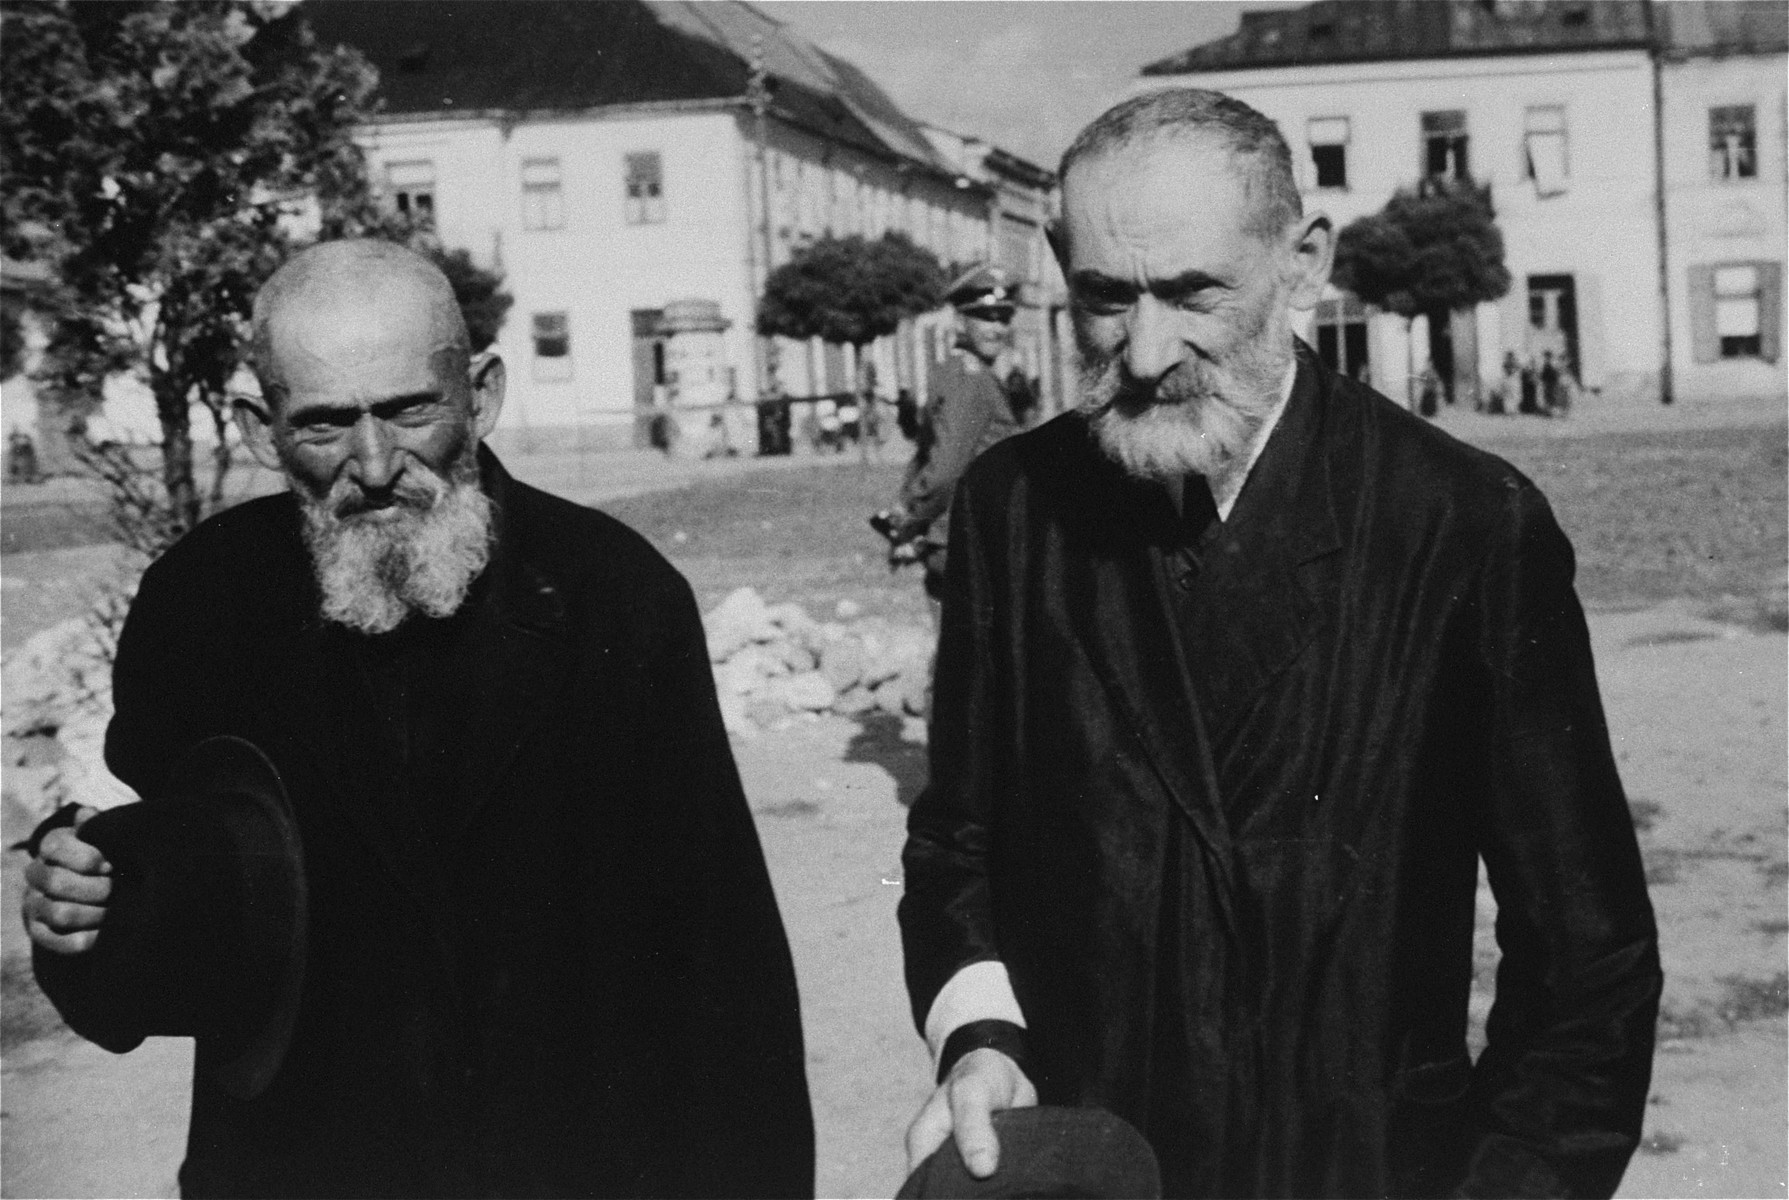 Two religious Jews wearing armbands are forced to remove their hats on a street in an unidentified ghetto.    An SS officer is visible in the background.